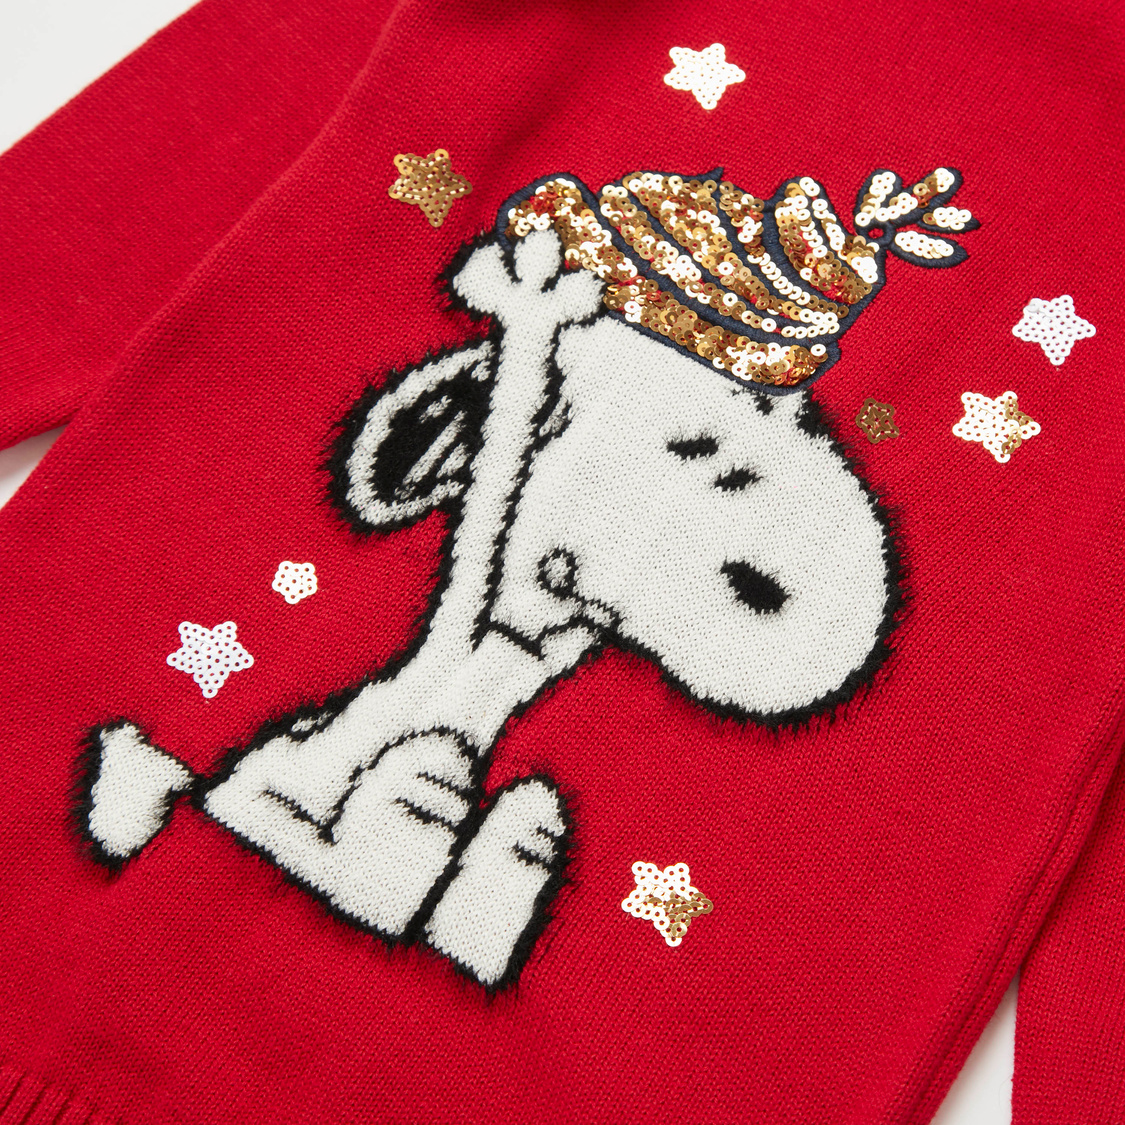 Snoopy Sequin Detail Sweater Dress with Stockings